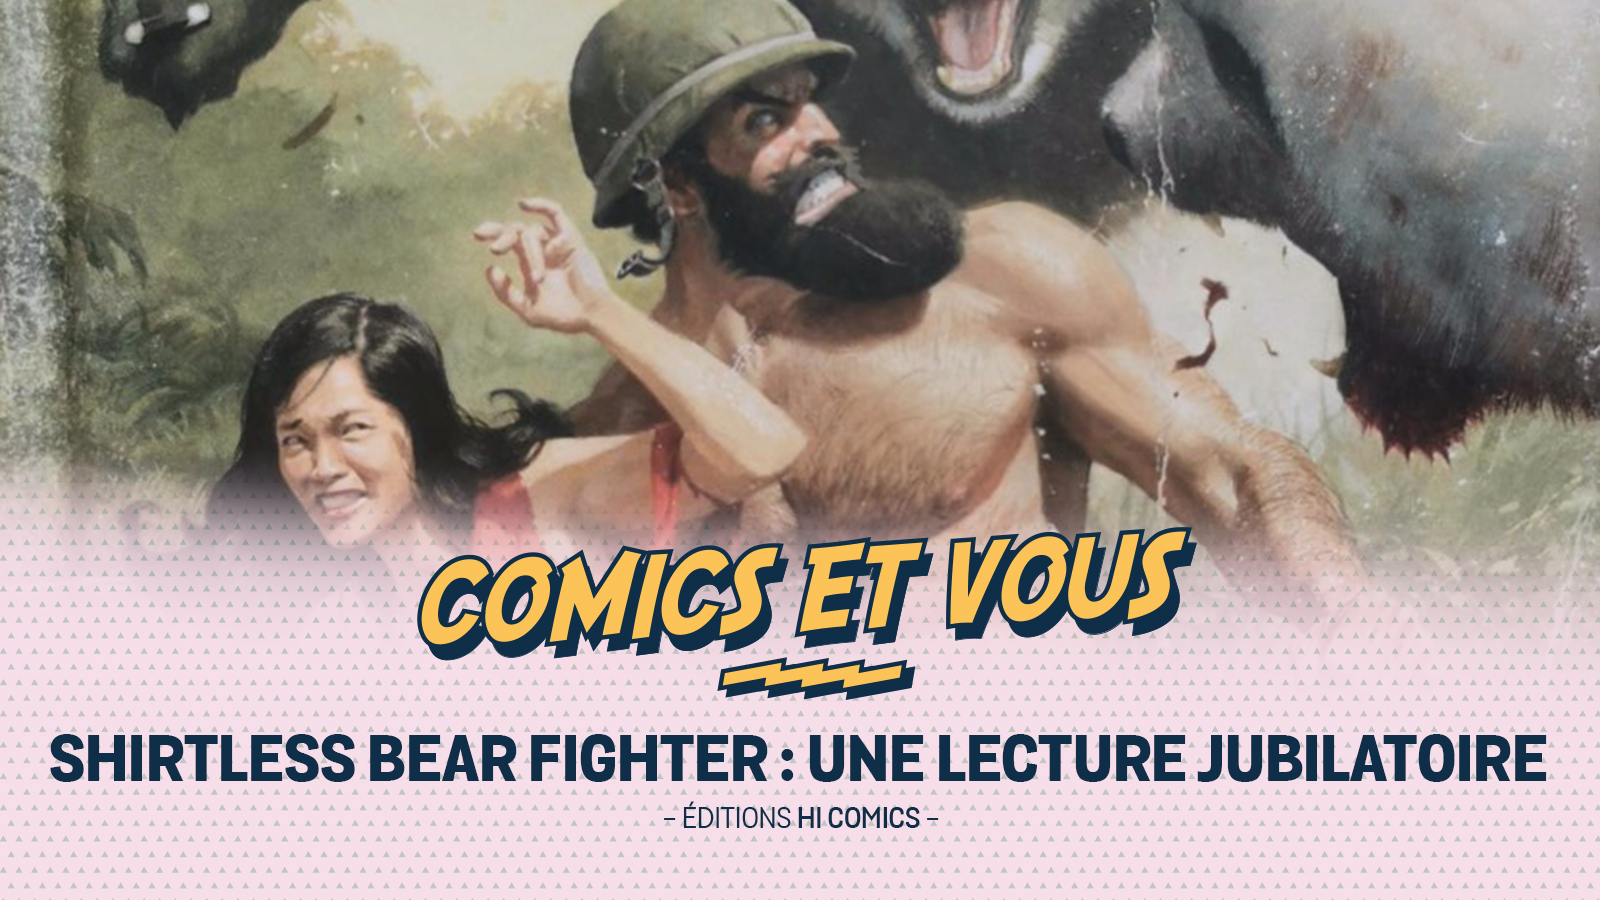 Shirtless Bear Fighter : une lecture jubilatoire